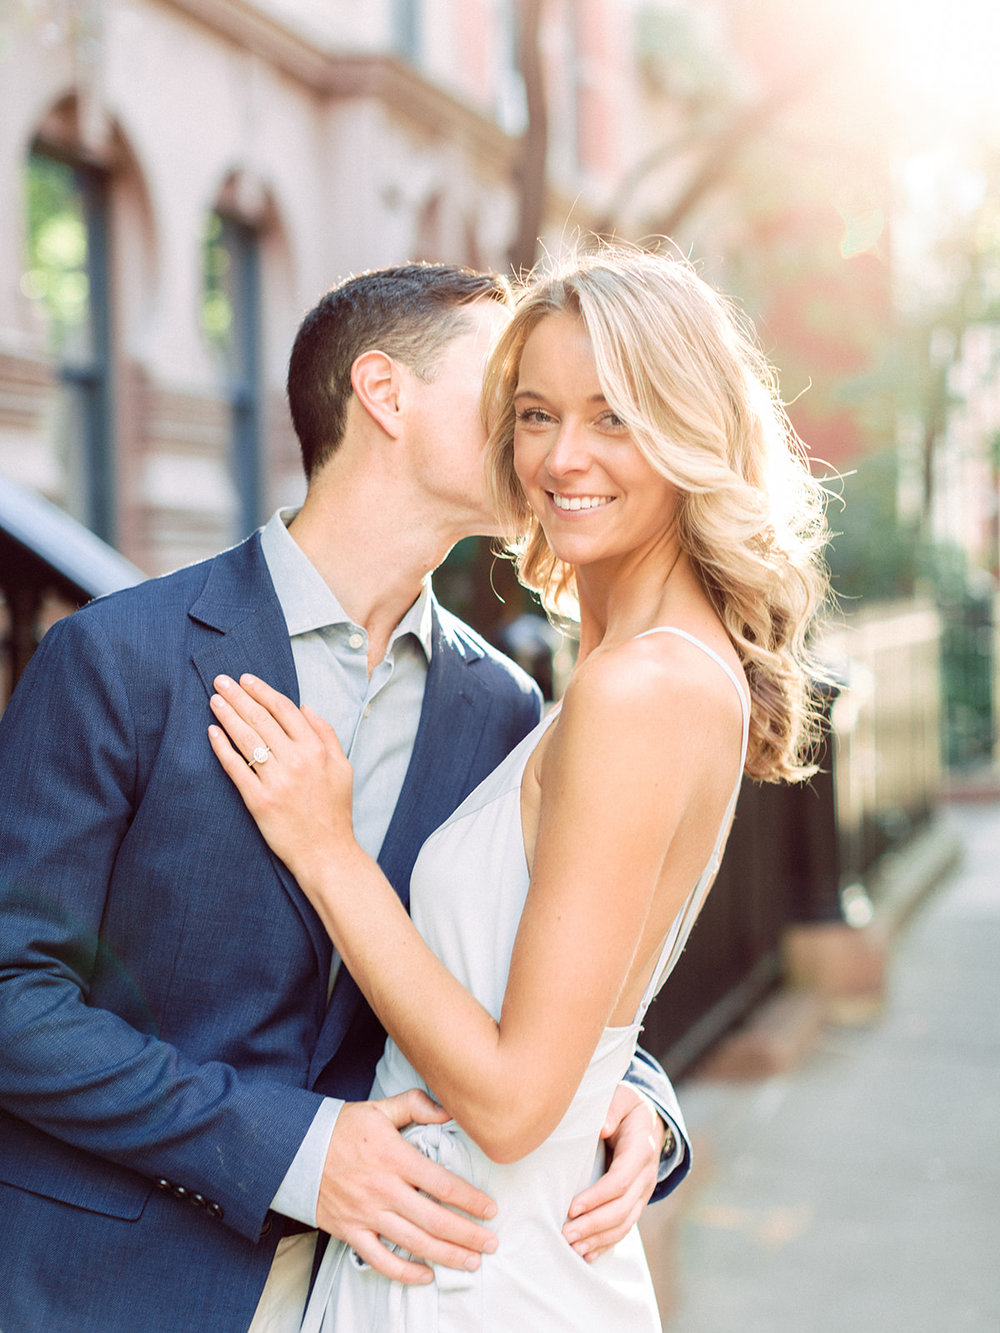 New York City Engagement Photos with Rachel May Photography-92317-89.jpg